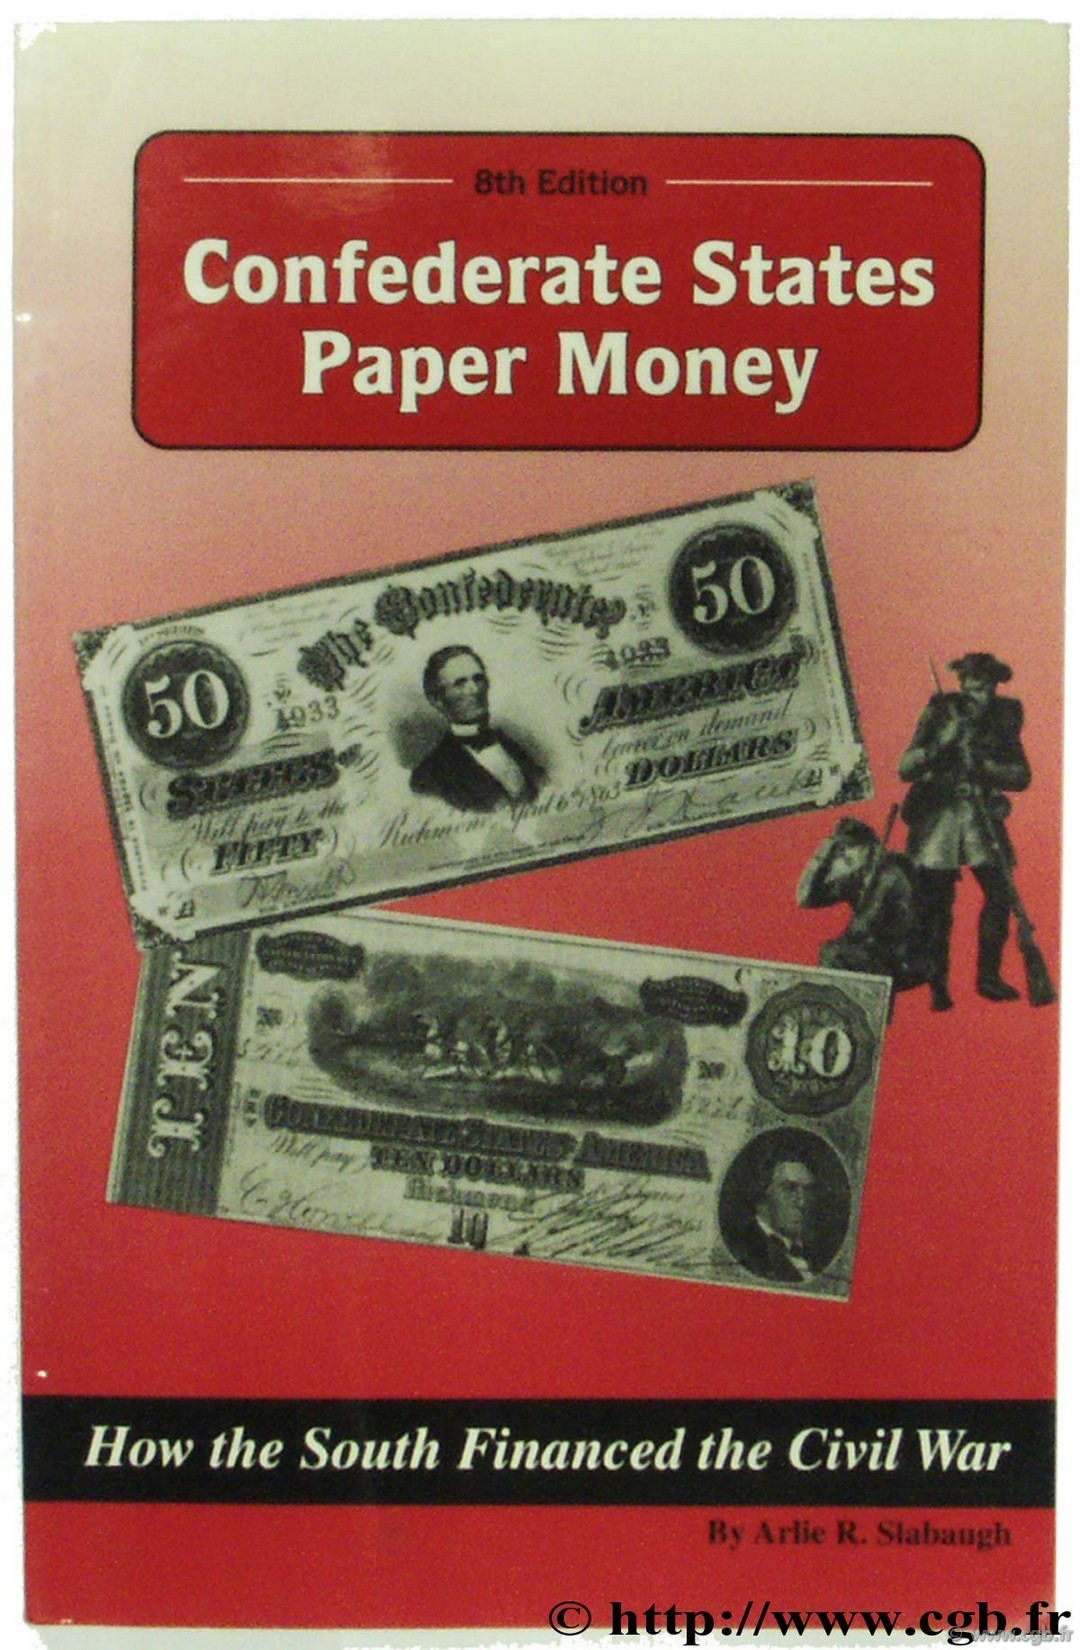 Confederate states paper money - 8th edition SLABAUGH A.-R.